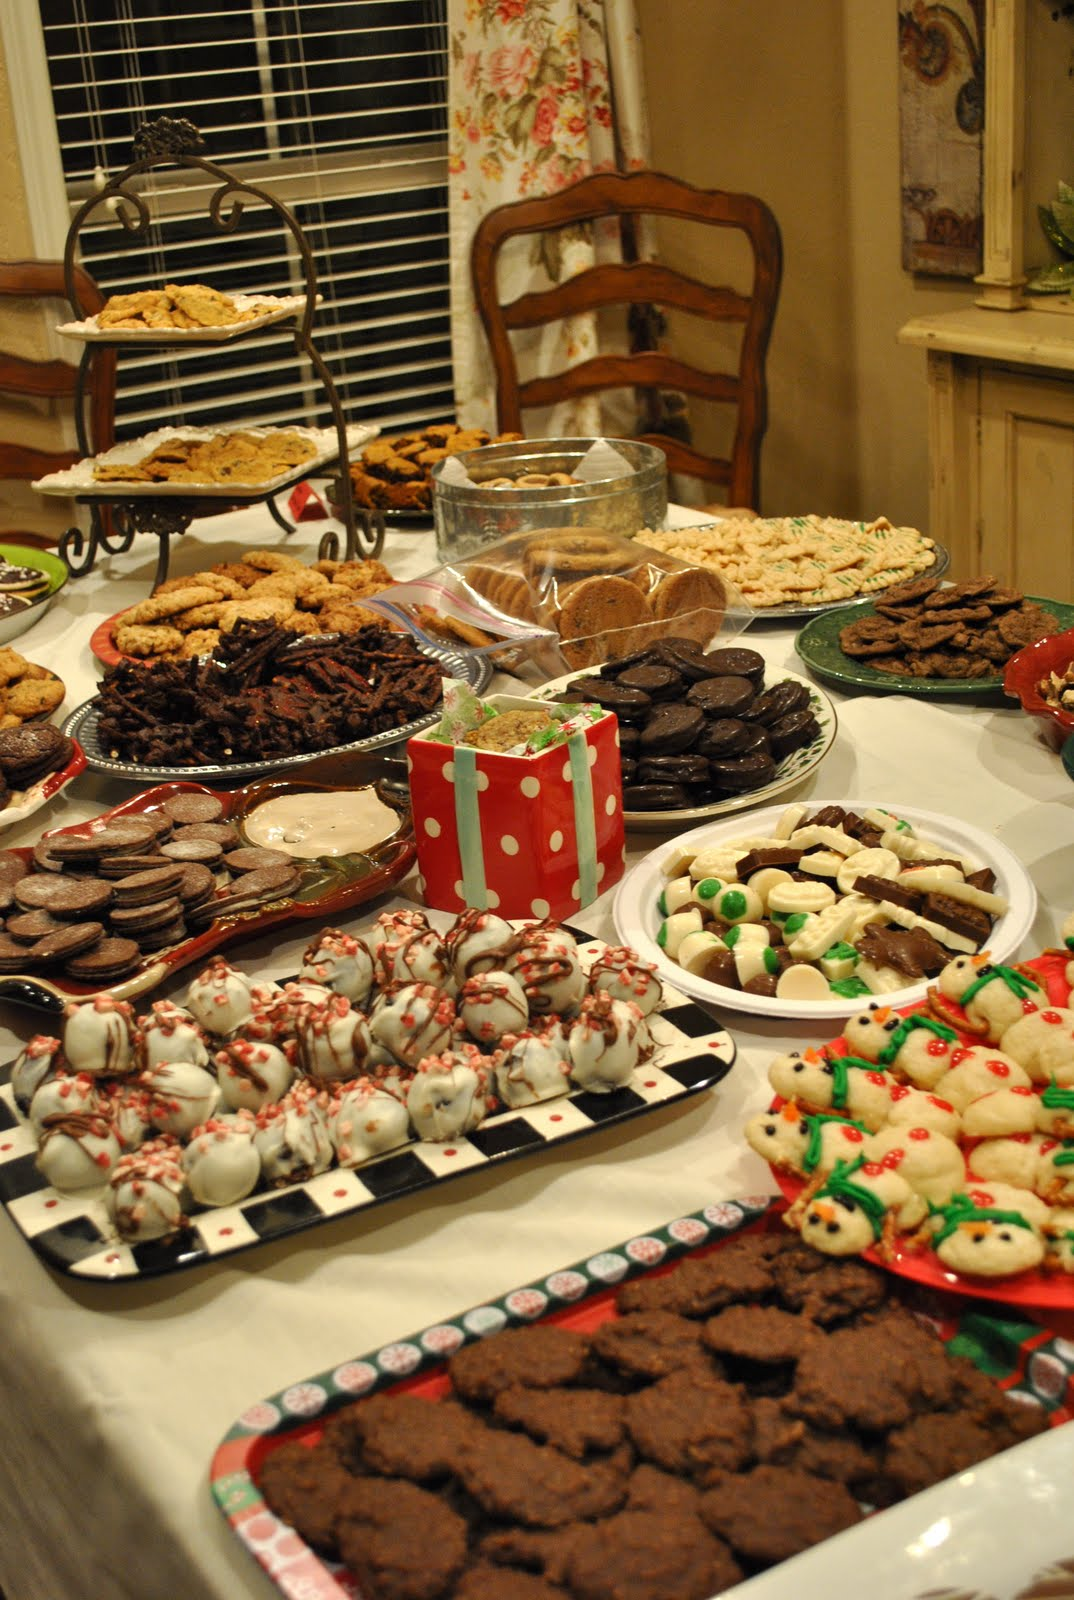 That village house cookie exchange party